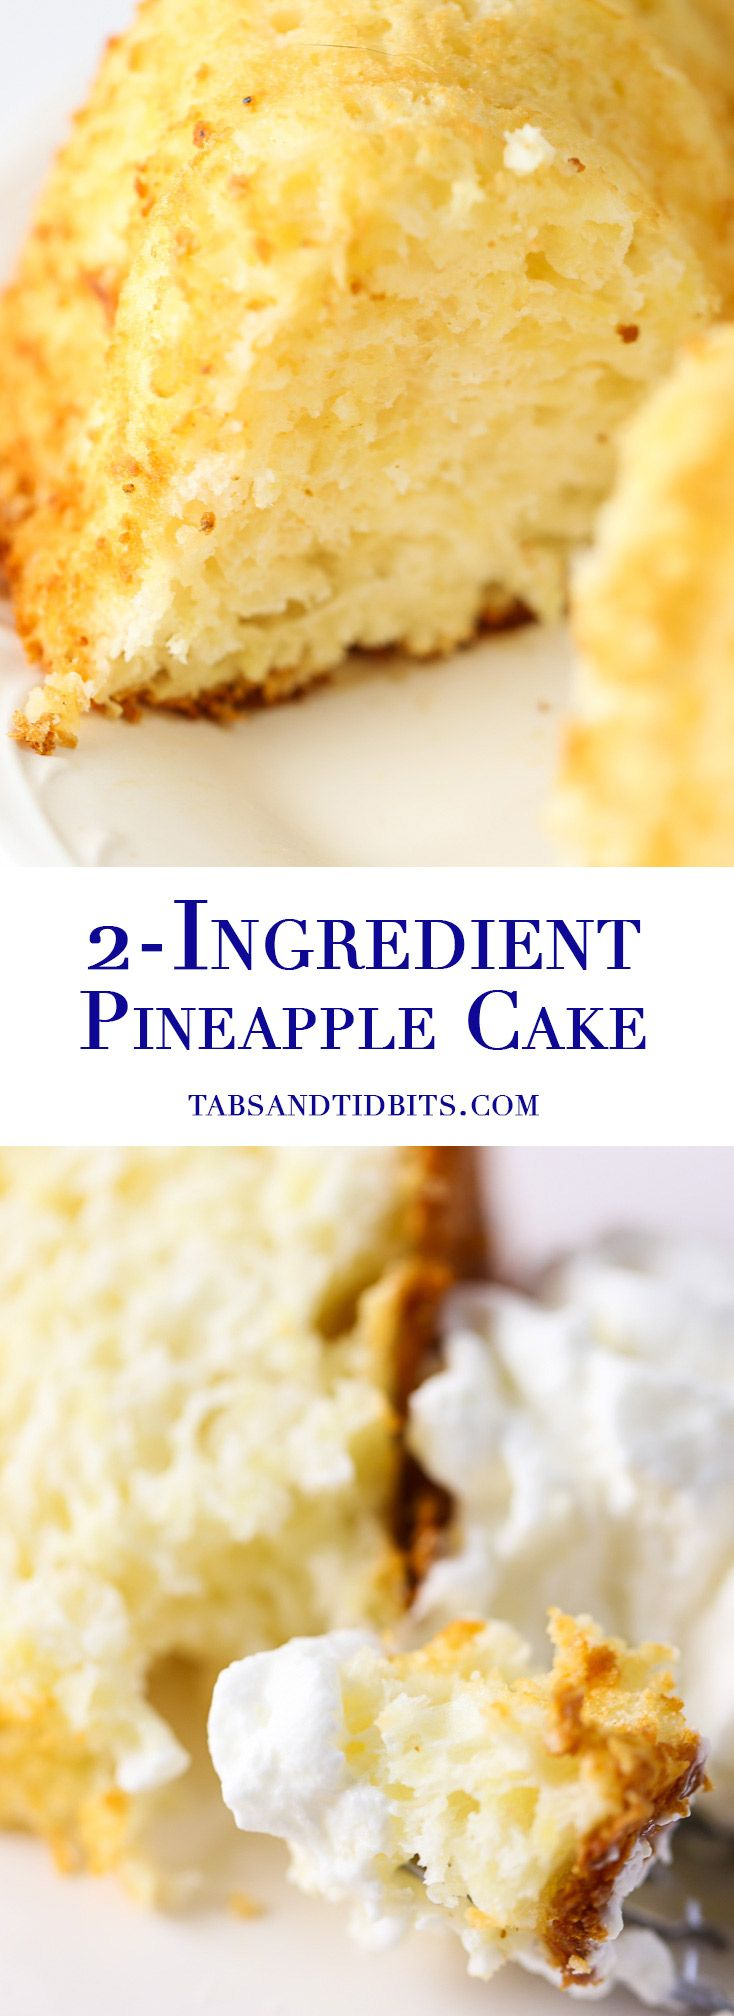 Two Ingredient Pineapple Cake - Just two ingredients create this simple, light, and sweet dessert! (Pineapple Dessert Recipes)